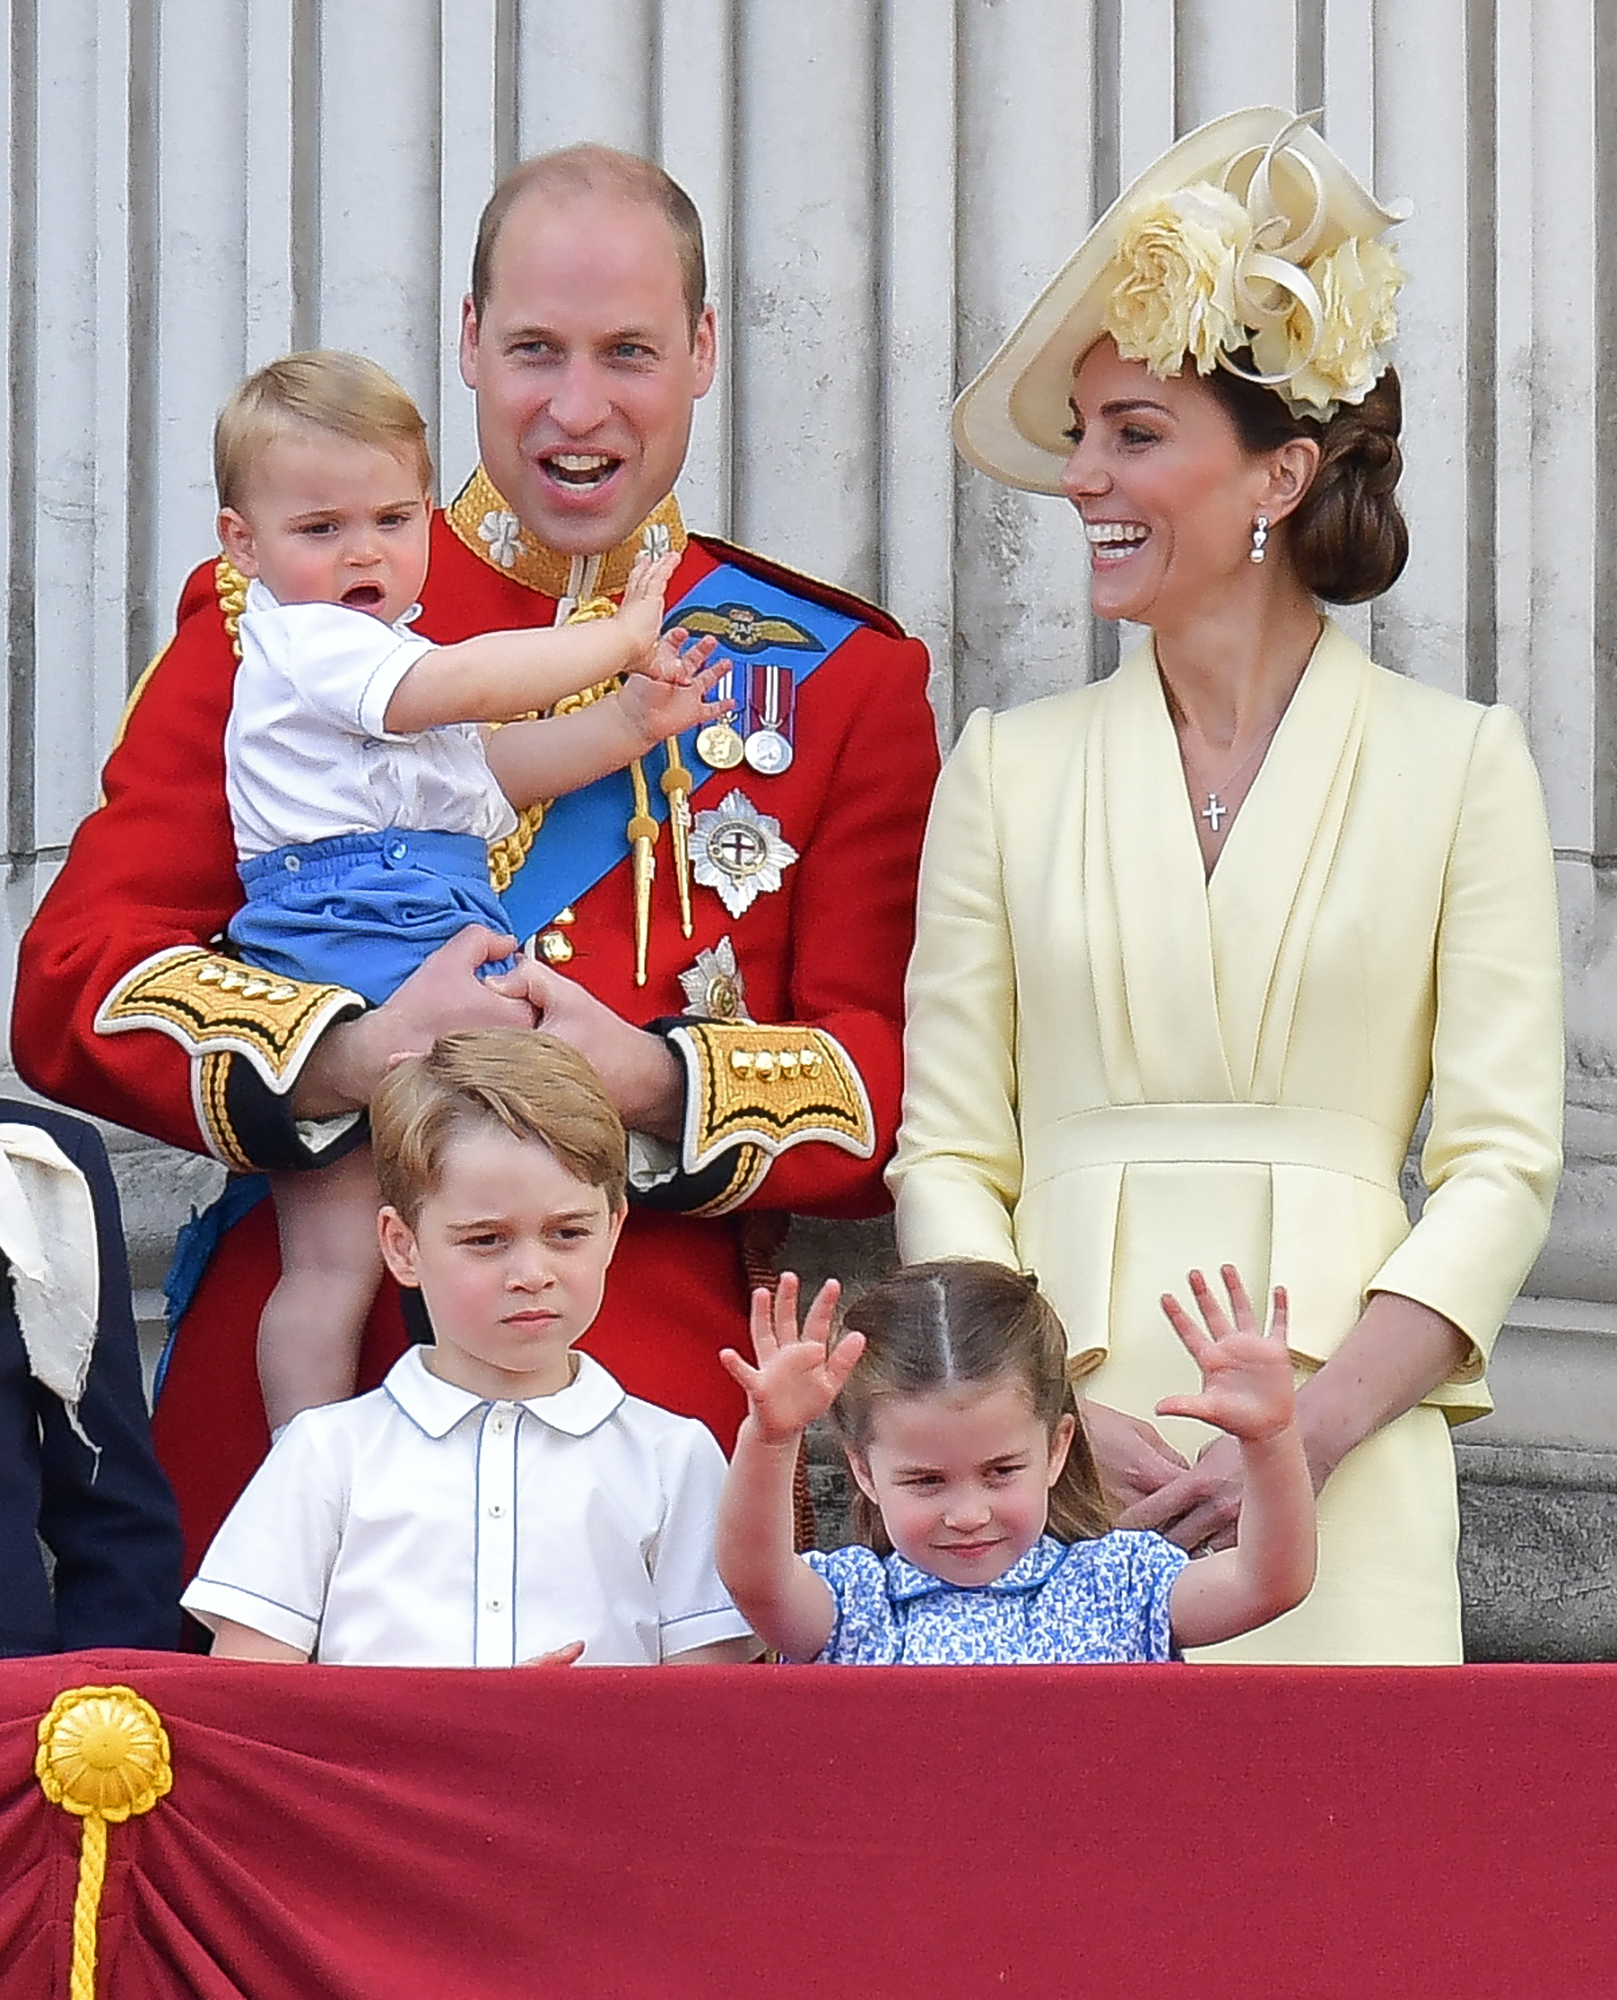 Britain's Prince William, Duke of Cambridge holding Prince Louis, Prince George, Princess Charlotte and Britain's Catherine, Duchess of Cambridge stand with other members of the Royal Family on the balcony of Buckingham Palace to watch a fly-past of aircraft by the Royal Air Force, in London on June 8, 2019. - The ceremony of Trooping the Colour is believed to have first been performed during the reign of King Charles II. Since 1748, the Trooping of the Colour has marked the official birthday of the British Sovereign. Over 1400 parading soldiers, almost 300 horses and 400 musicians take part in the event. (Photo credit DANIEL LEAL-OLIVAS/AFP via Getty Images)